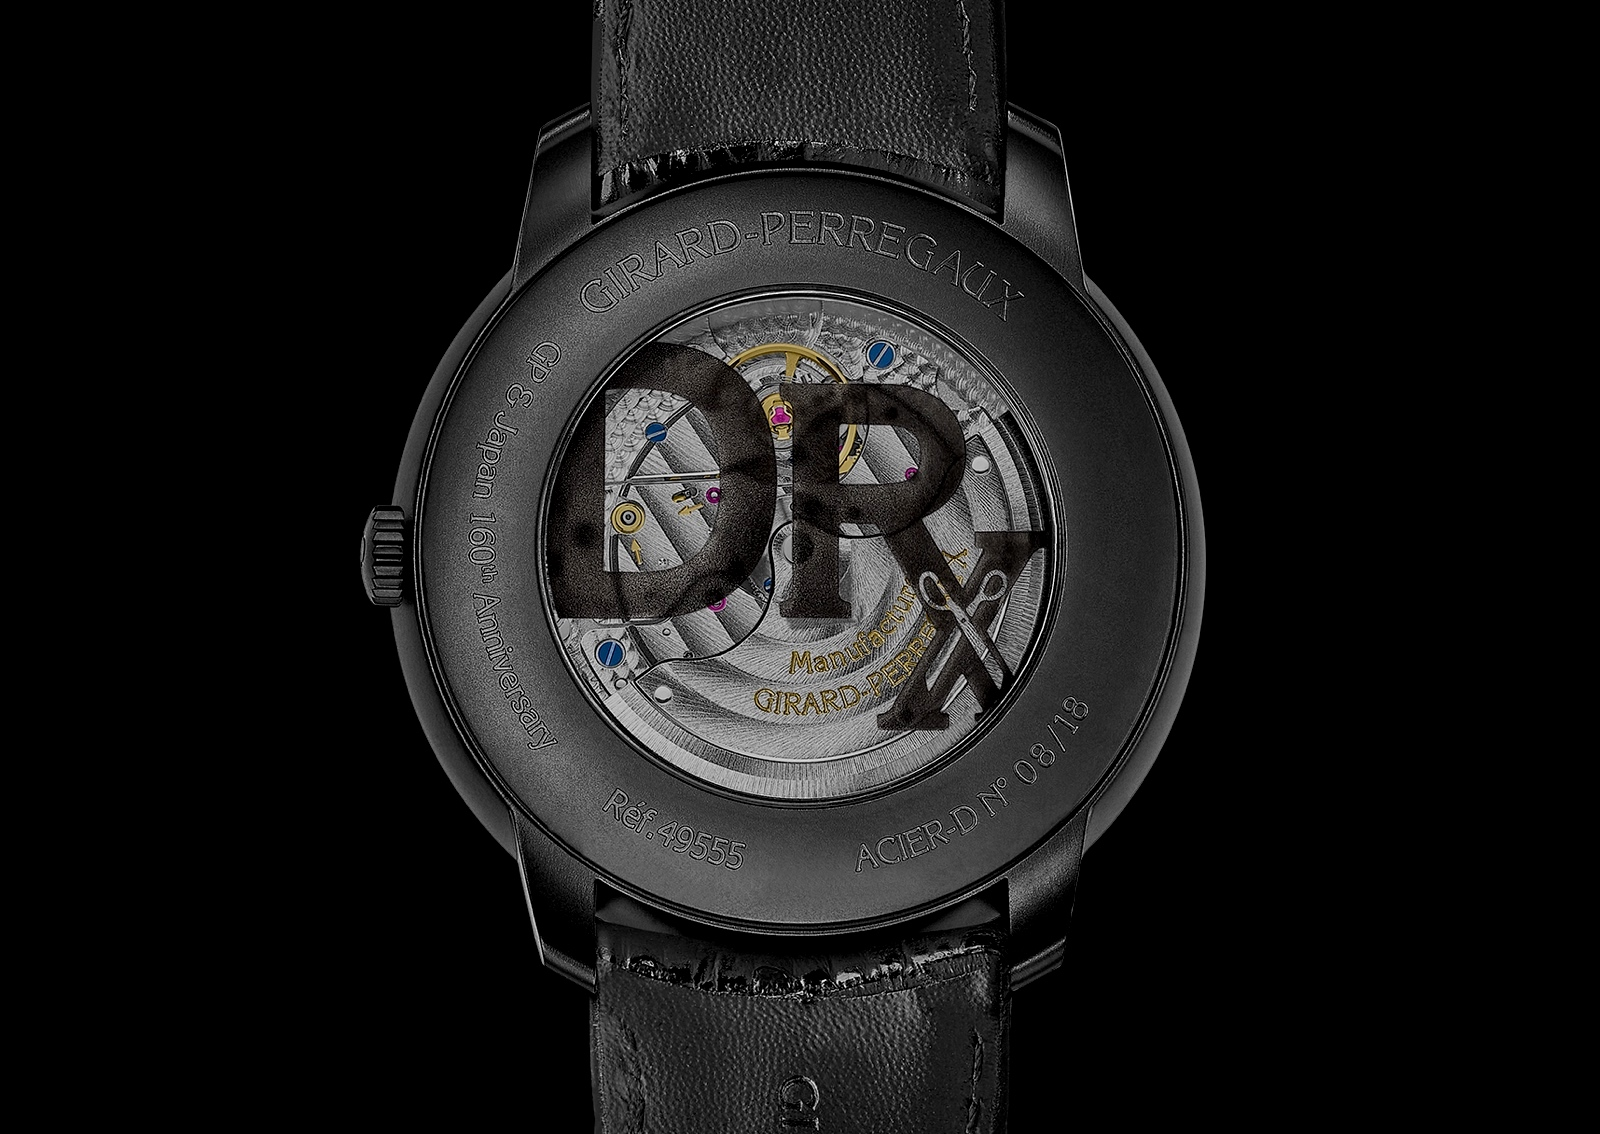 Girard-Perregaux 1966 East to West - caseback